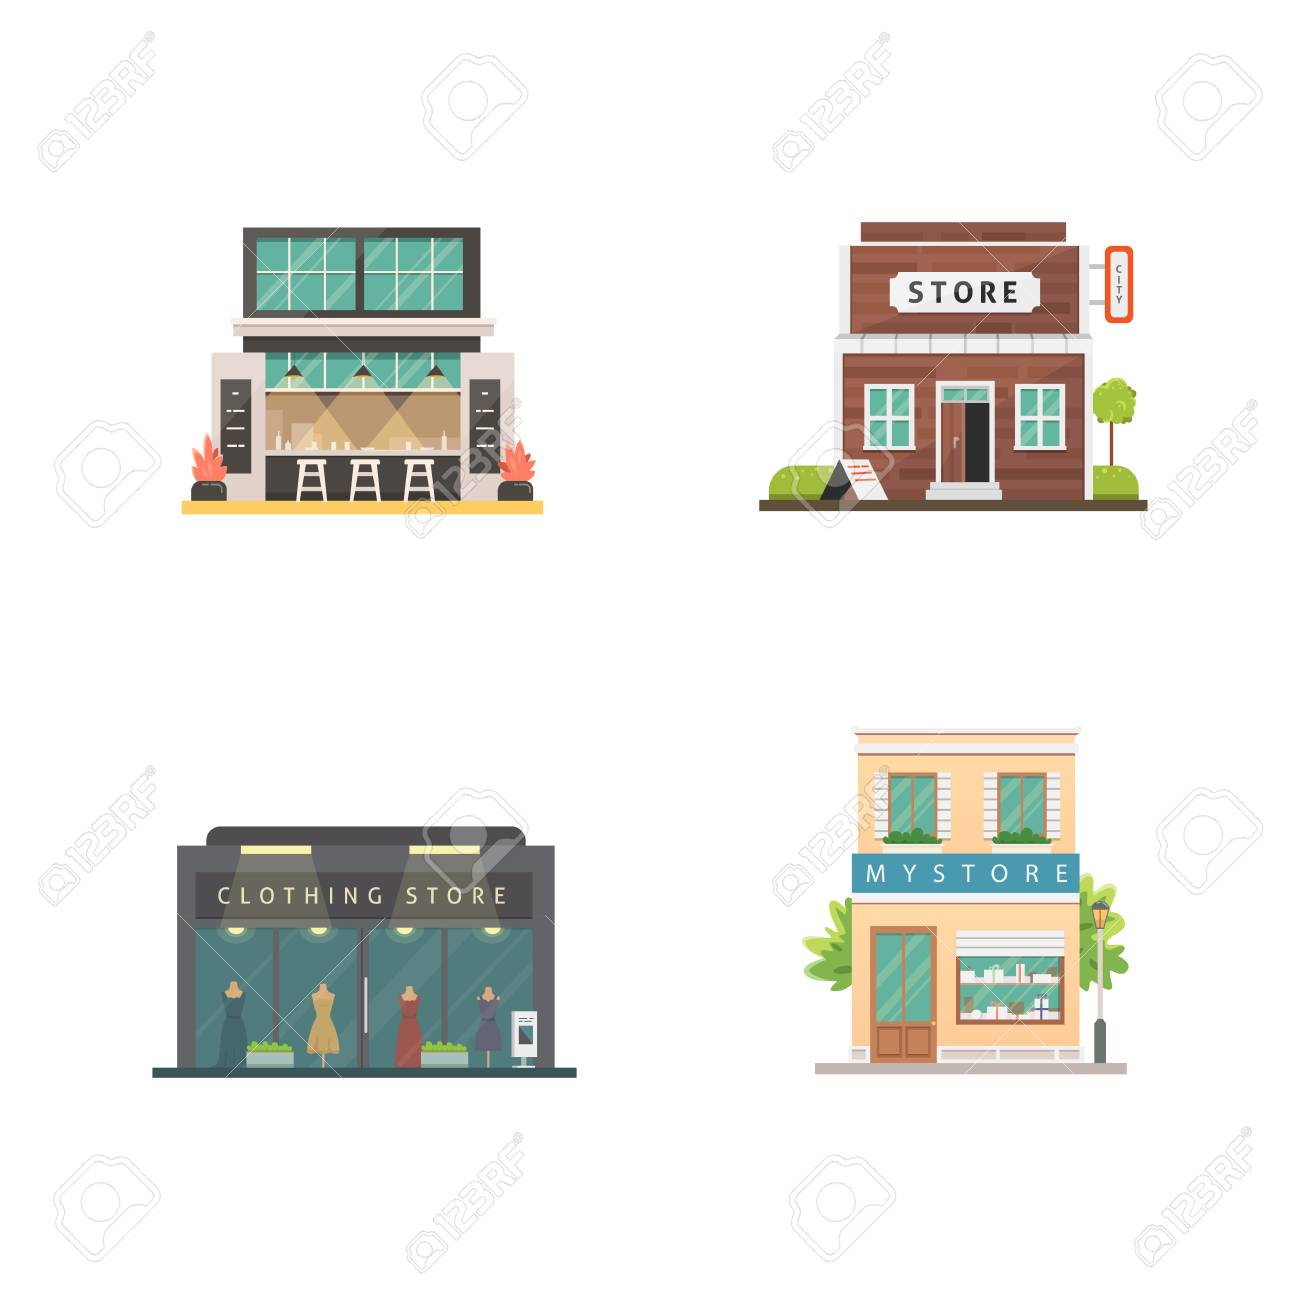 Shop Store Buildings Vector Illustrations Set Market Exterior Royalty Free Cliparts Vectors And Stock Illustration Image 115859168